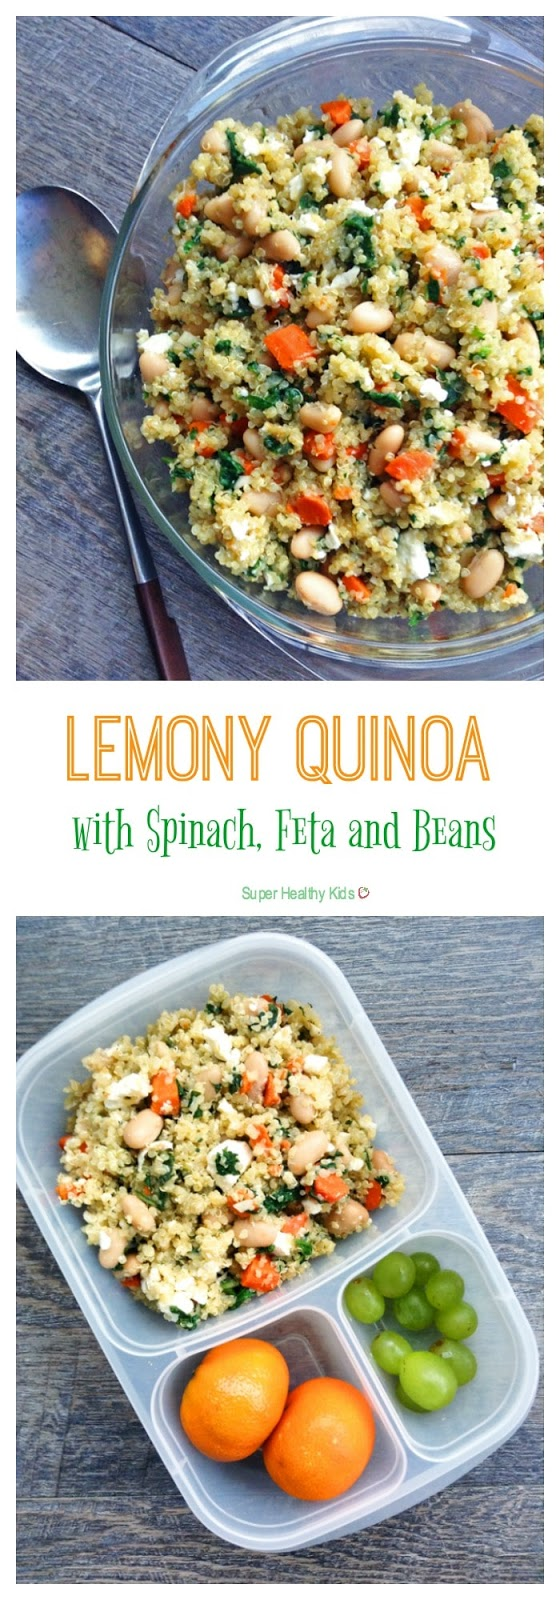 Lemony Quinoa with Spinach, Feta and Beans